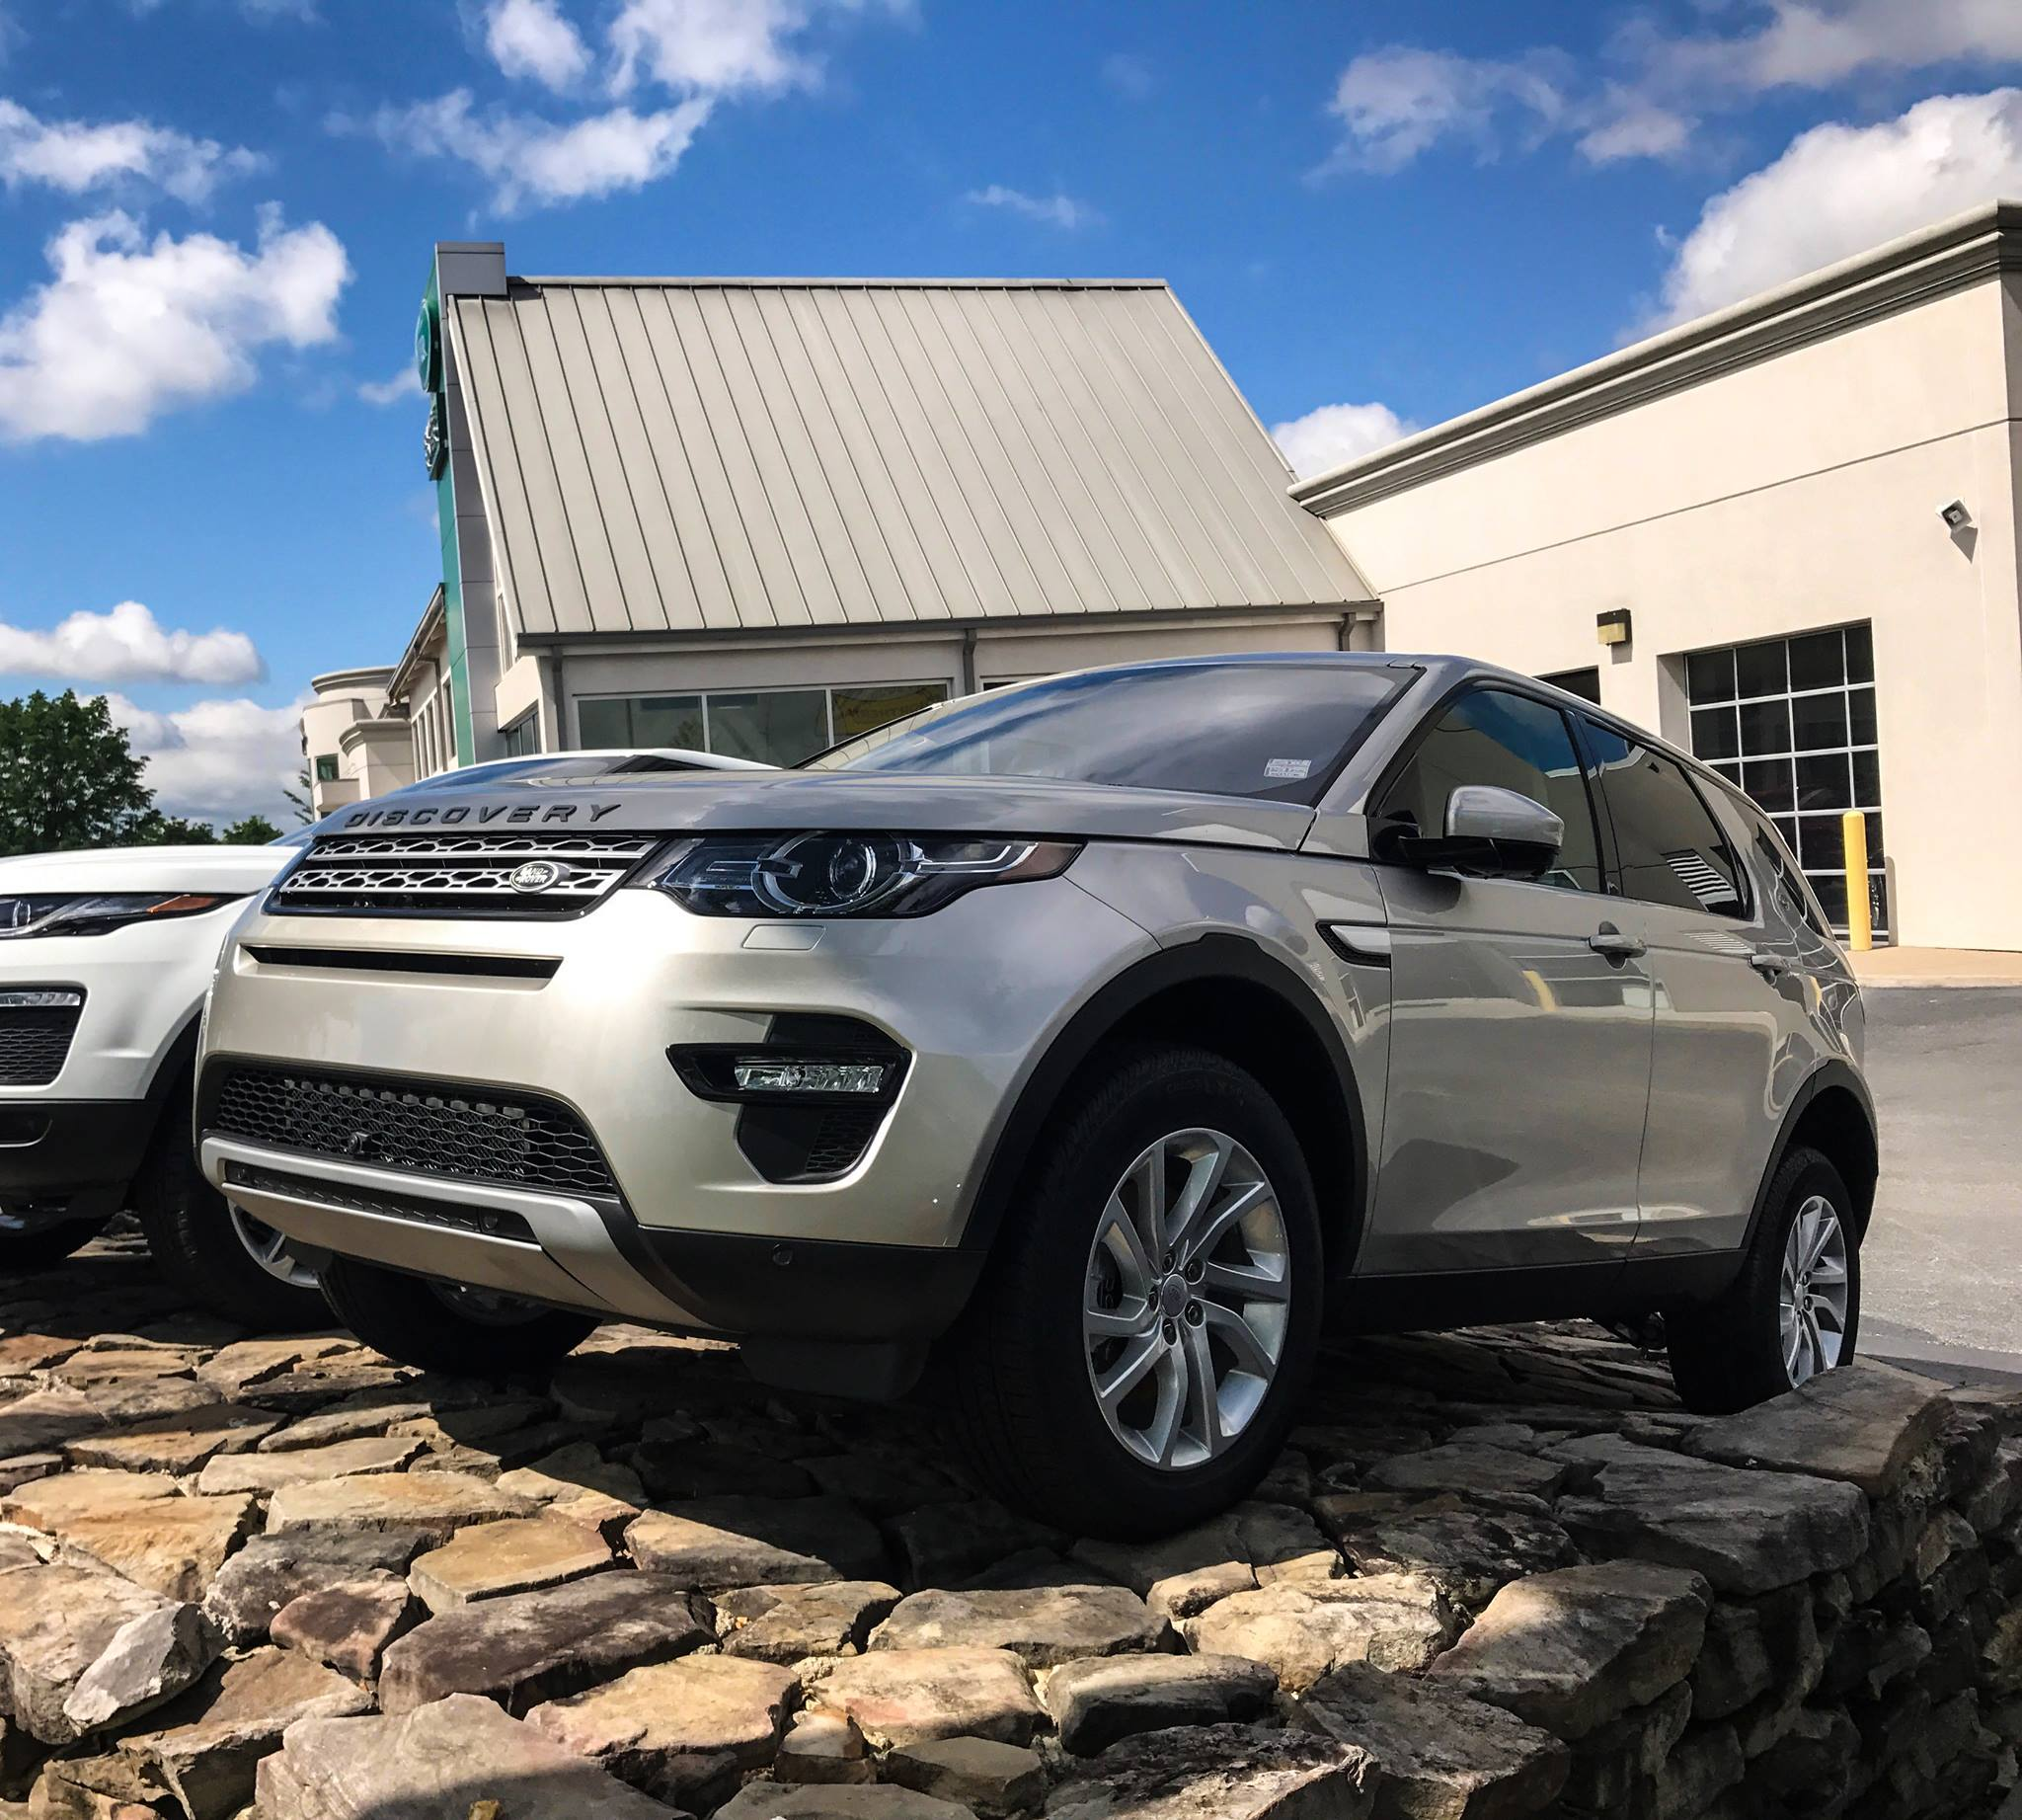 About Land Rover Chattanooga New Land Rover And Used Car Dealer